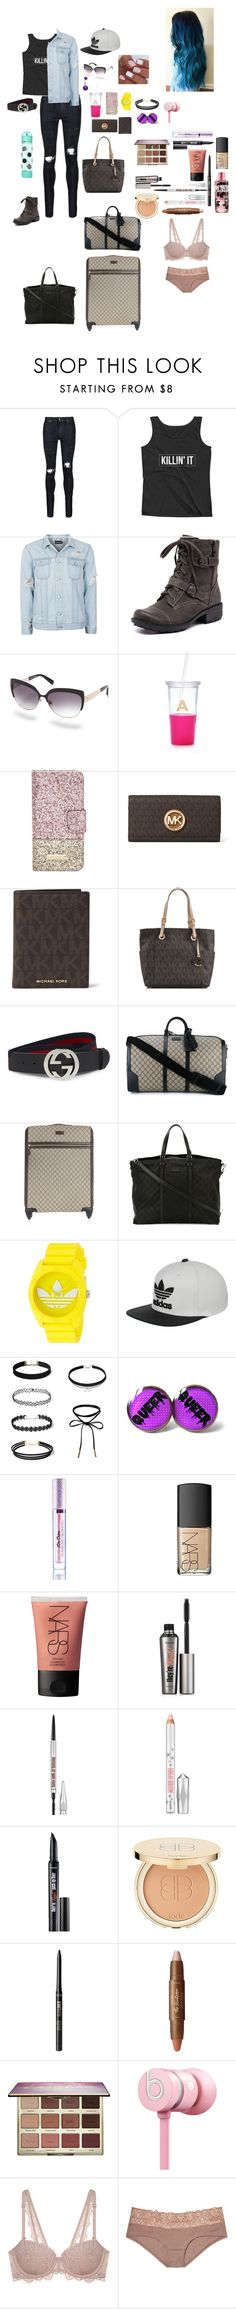 """""""Untitled #1624"""" by katy-marie-maynard ❤ liked on Polyvore featuring AMIRI, Topman, Planet, Kate Spade, MICHAEL Michael Kors, Gucci, adidas, Lime Crime, NARS Cosmetics and Benefit"""